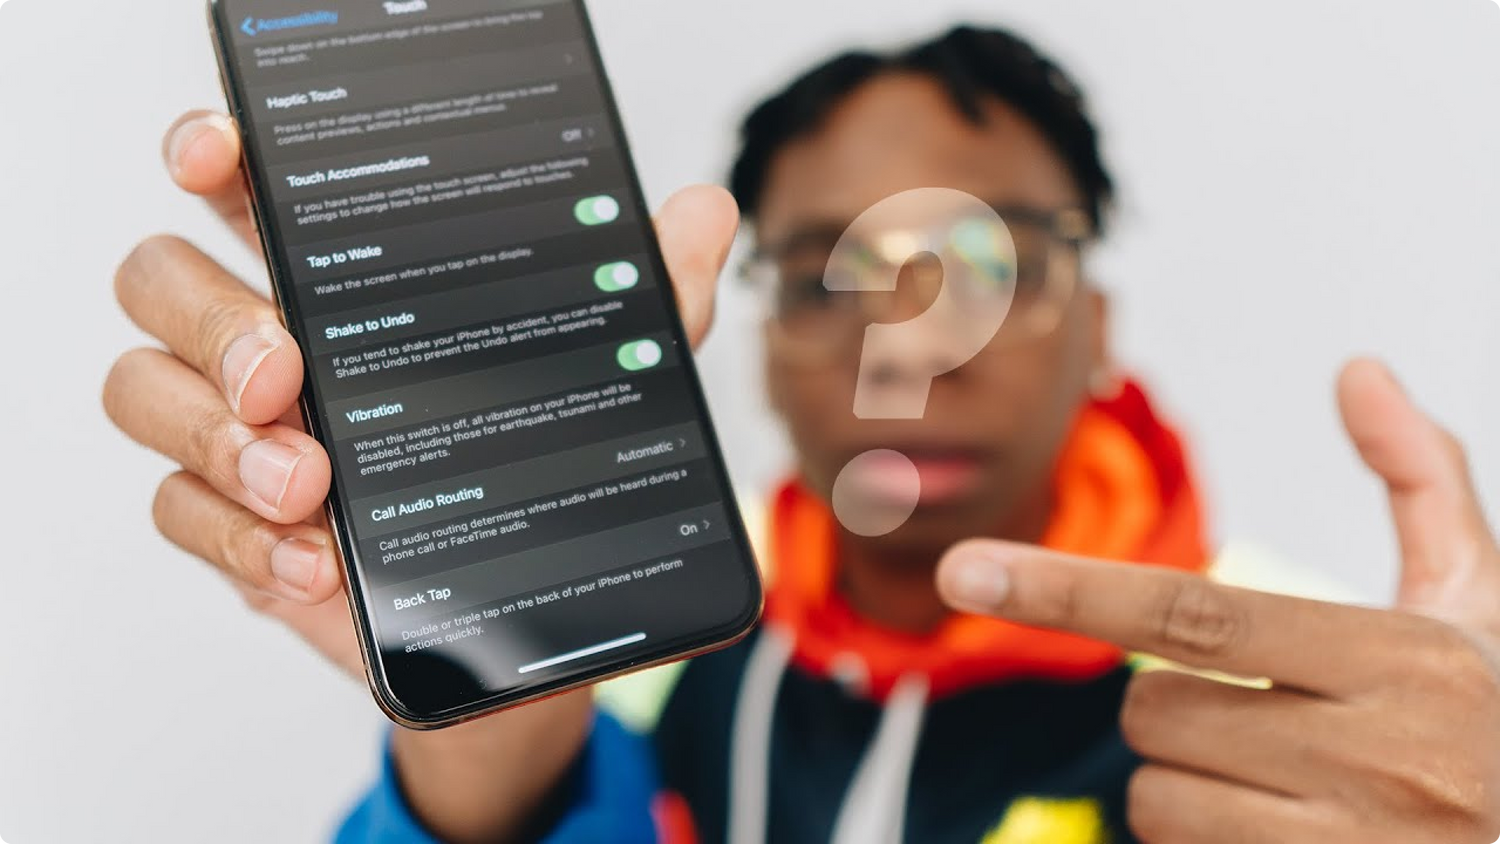 Shevon Salmon pointing to the Back Tap iOS 14 feature